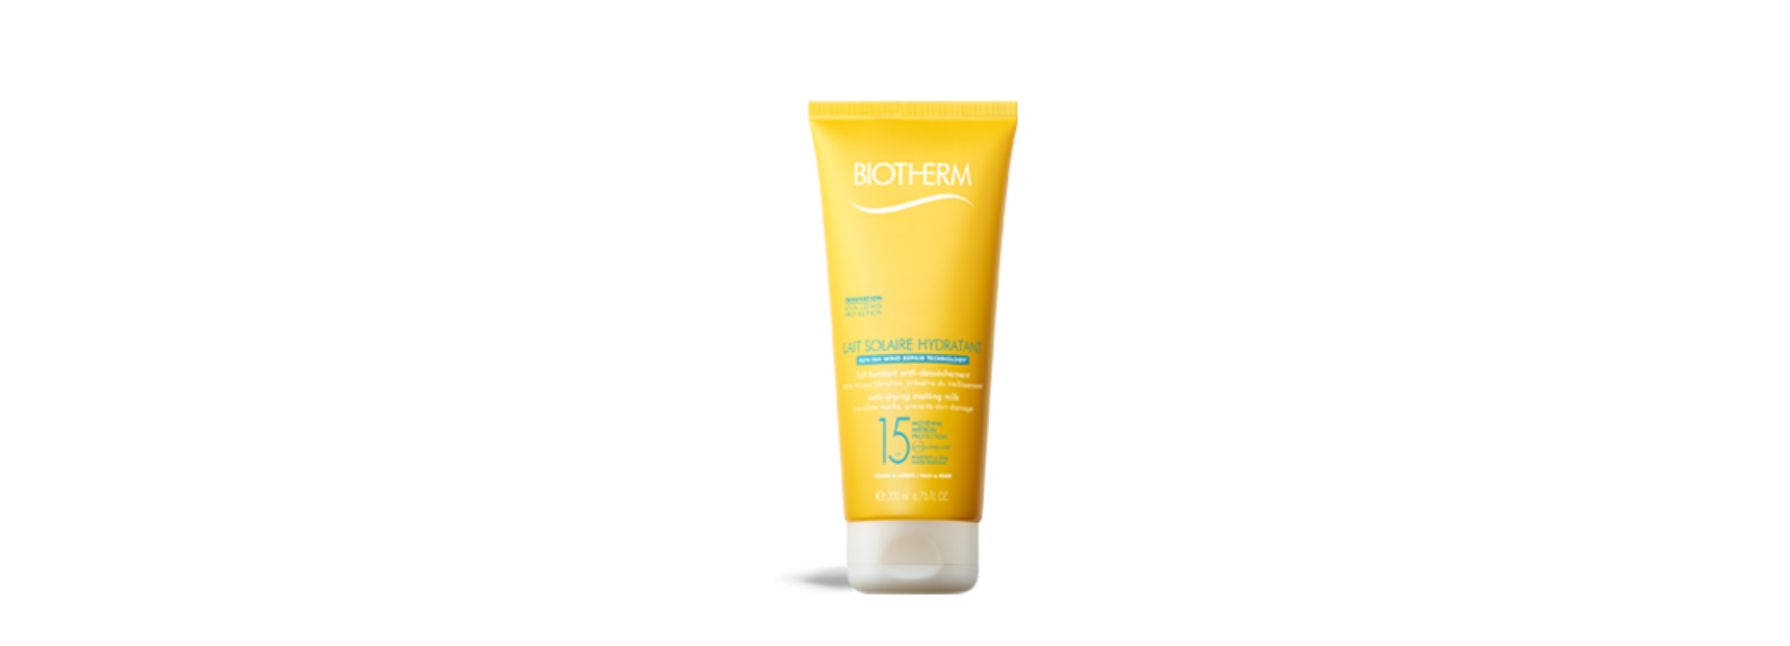 Biotherm Anti-drying melting milk face body SPF 15